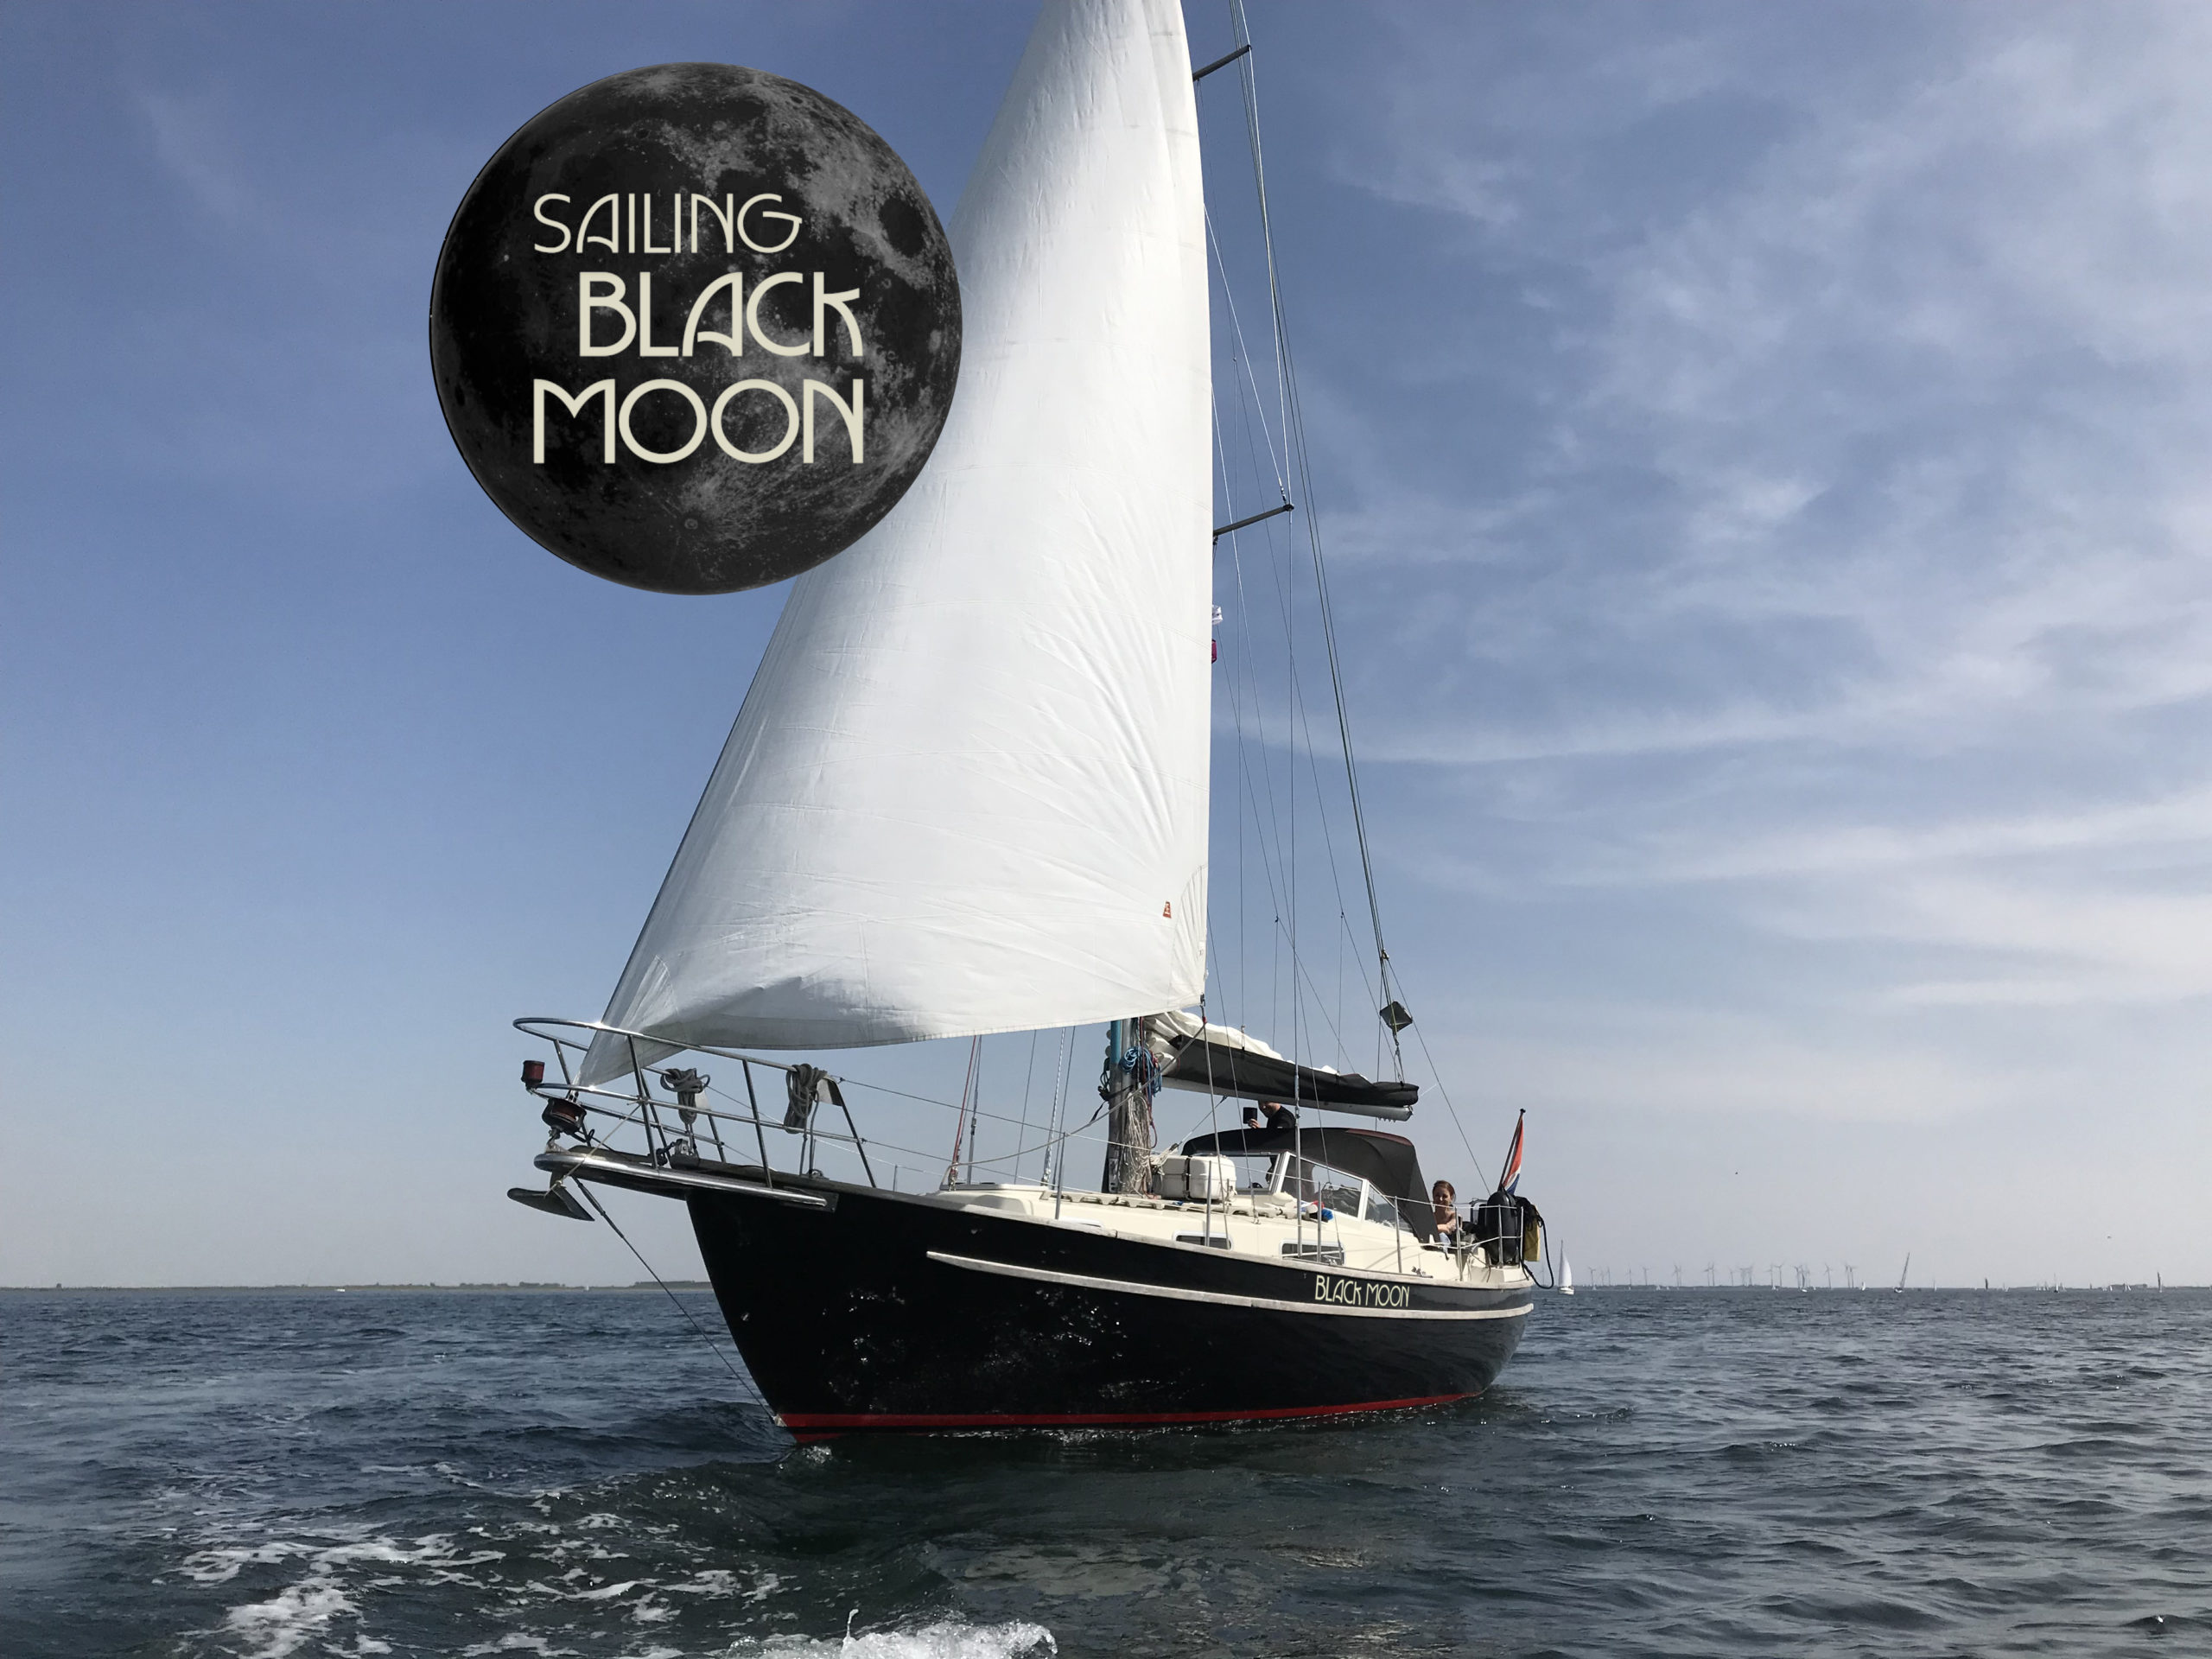 Sailing Black Moon - Reis met ons mee